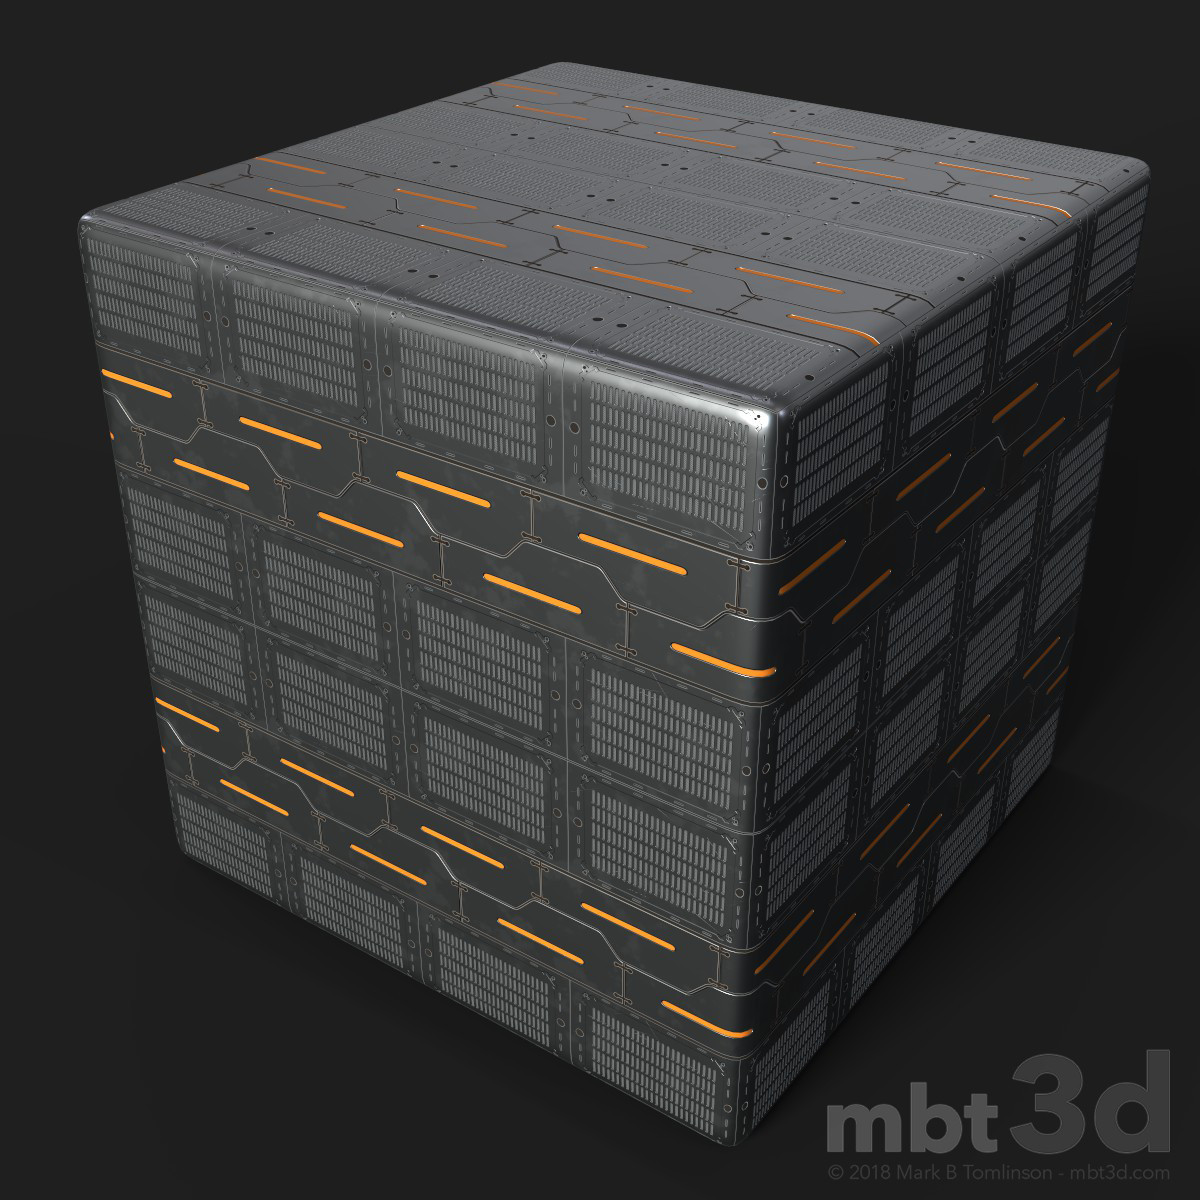 Sci-Fi Plate on Rounded Cube Tiled